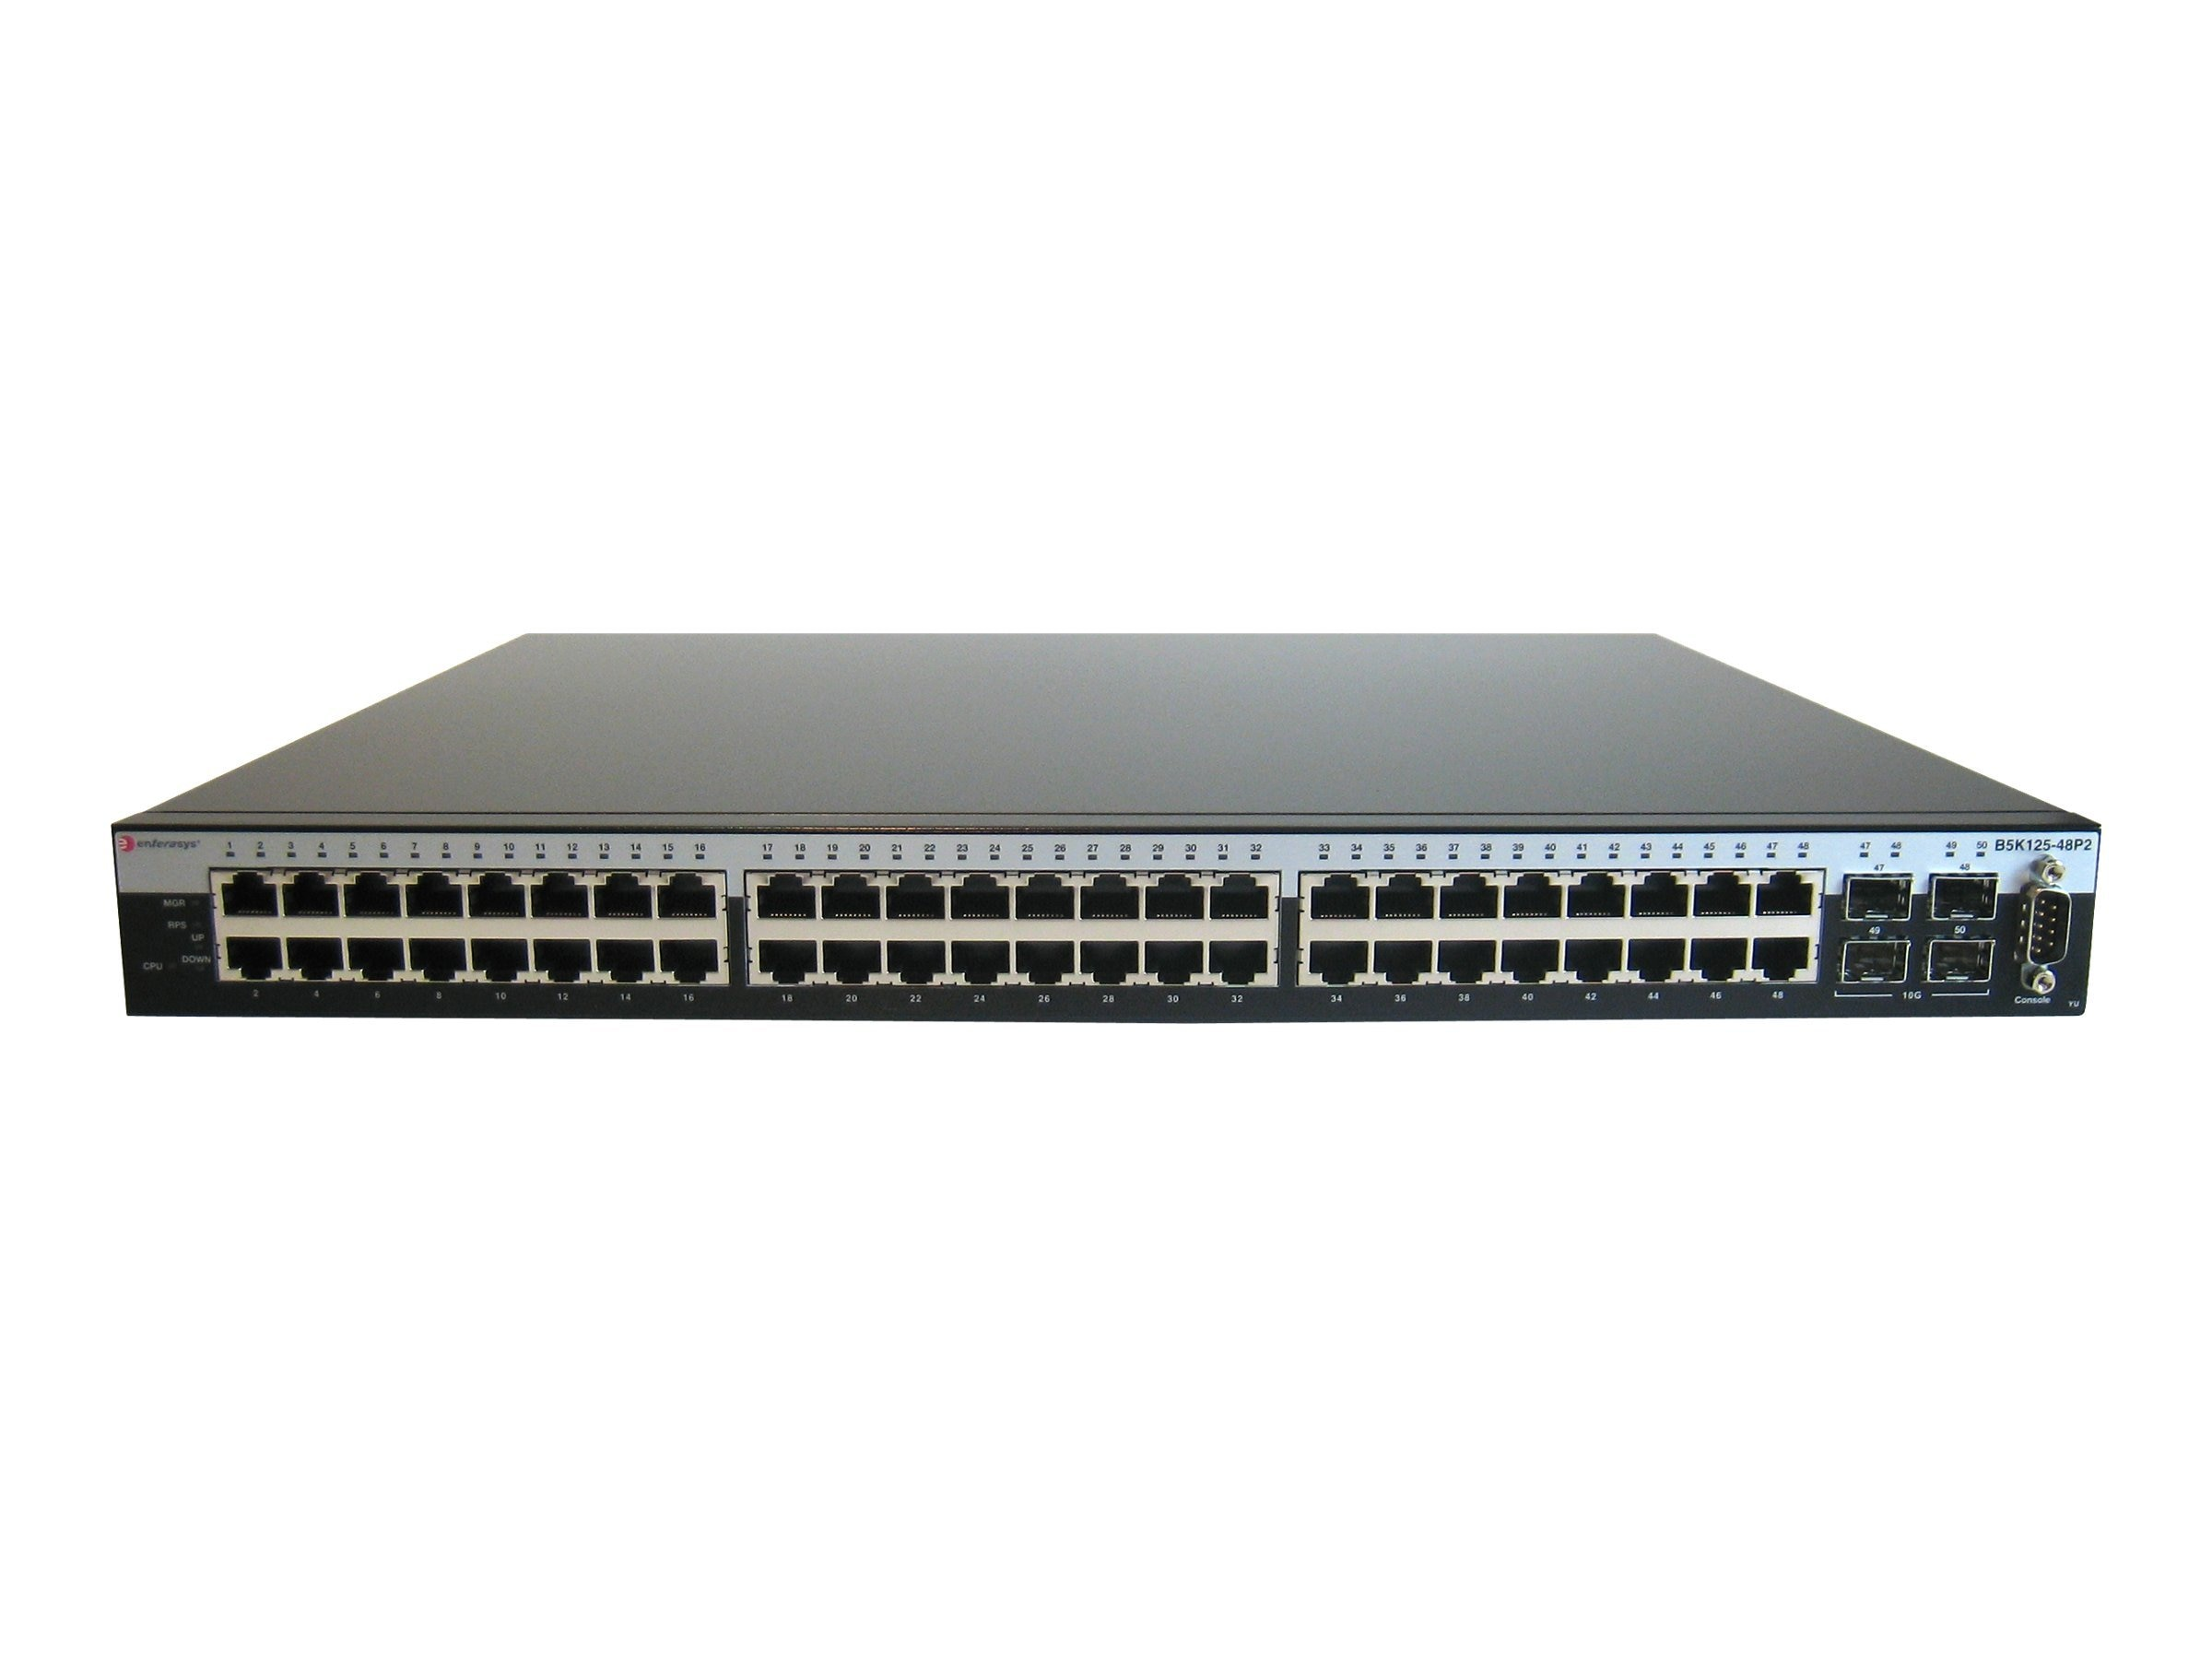 Enterasys B5 Stackable Switch 48-port 2 SFP Plus, B5K125-48P2